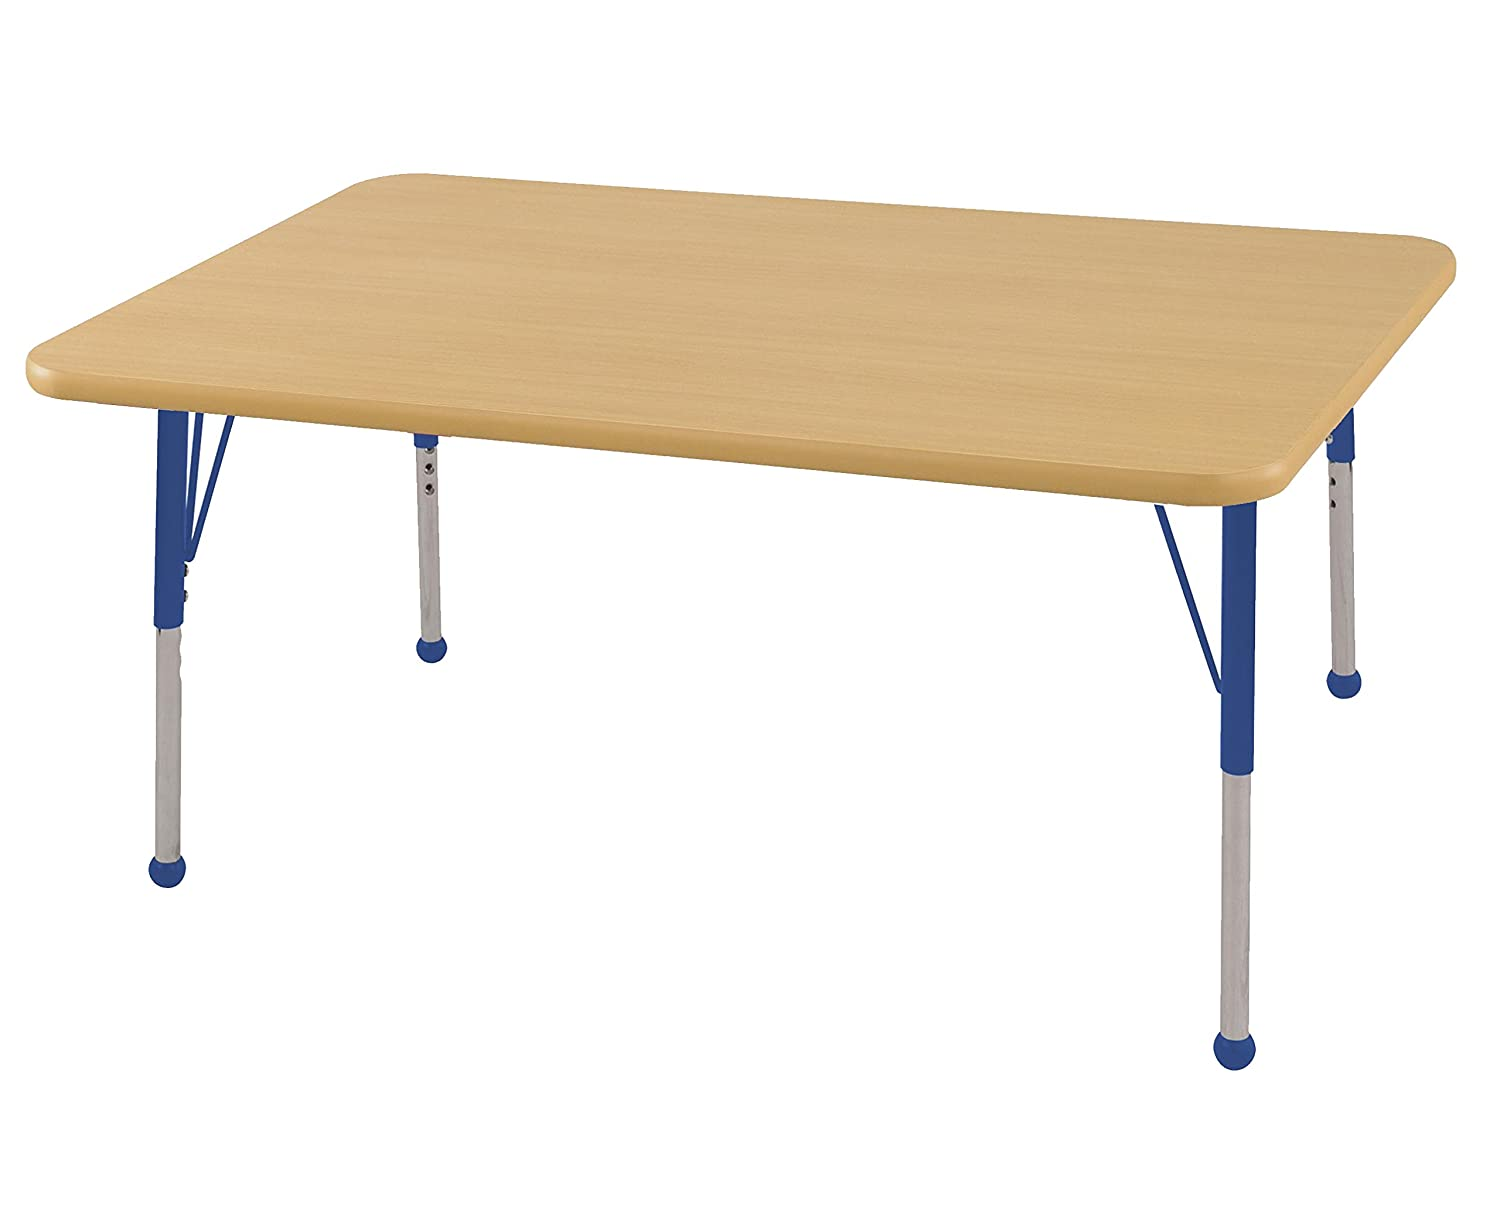 Standard Legs w// Ball Glides Maple//Blue Adjustable Height 19-30 inch ECR4Kids Mesa Thermo-fused 30 x 48 Rectangular School Activity Table